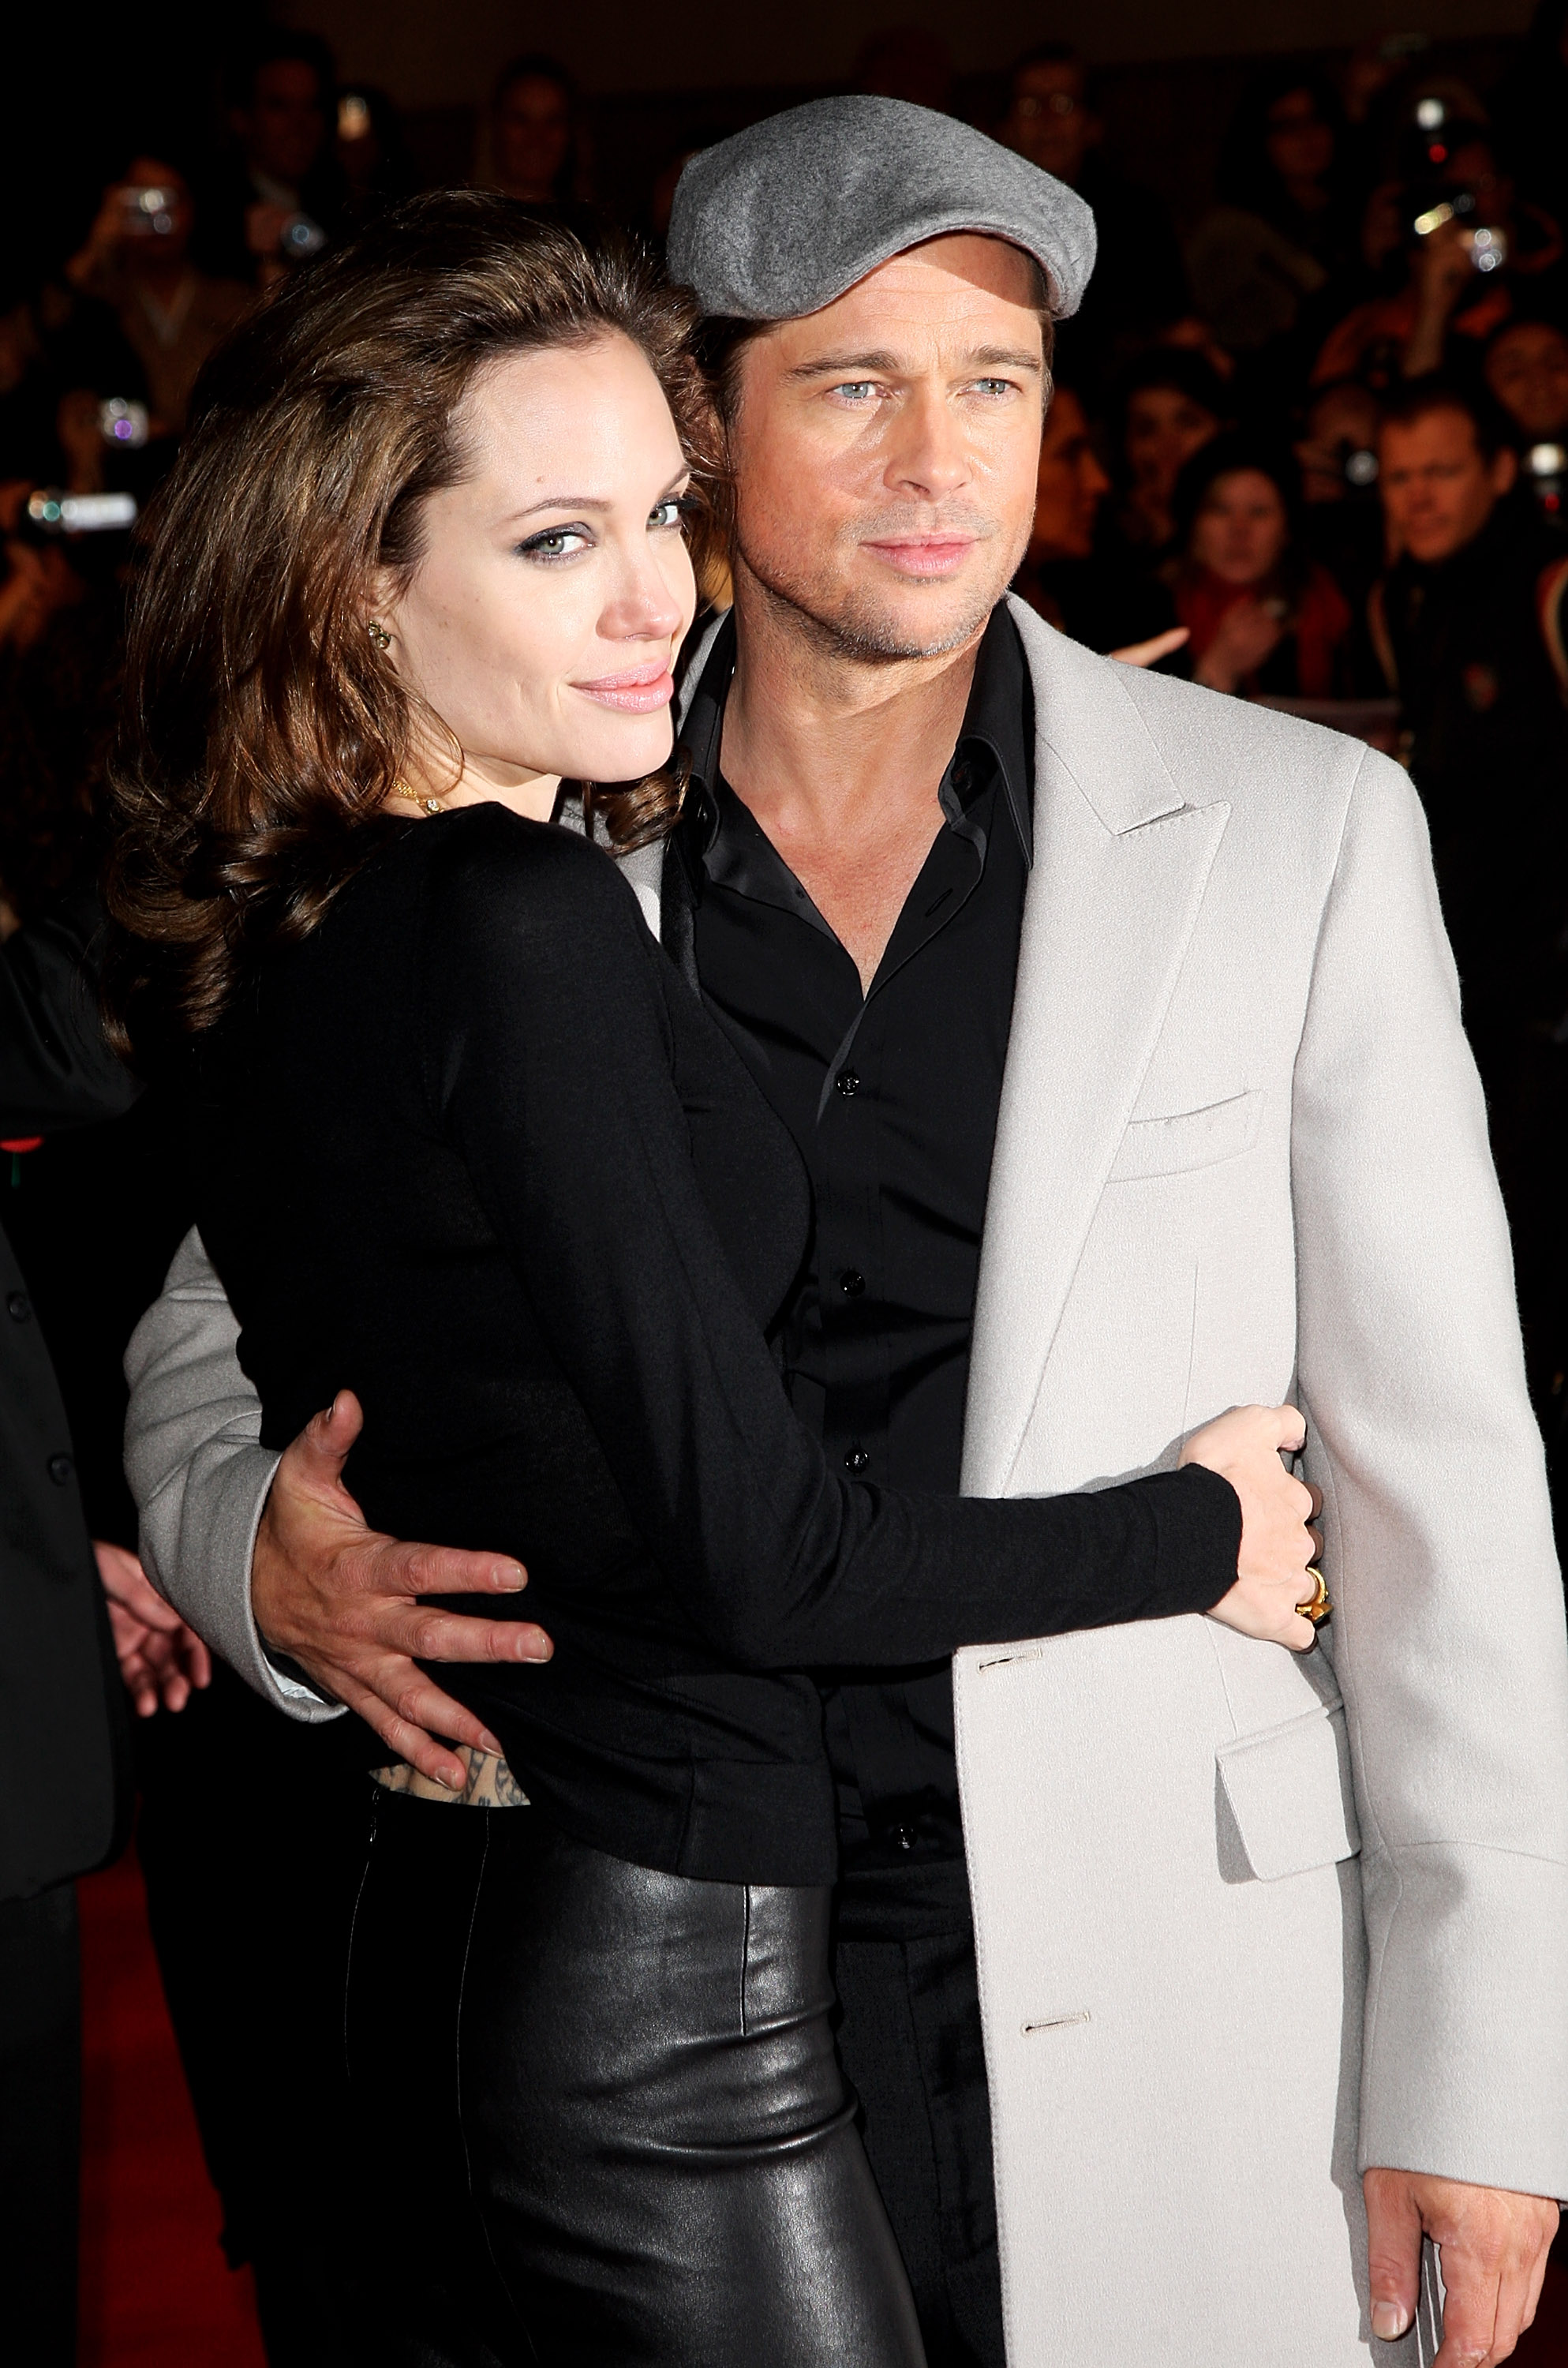 Angelina Jolie and Brad Pitt stepped out together for the London premiere of Beowulf in November 2007.